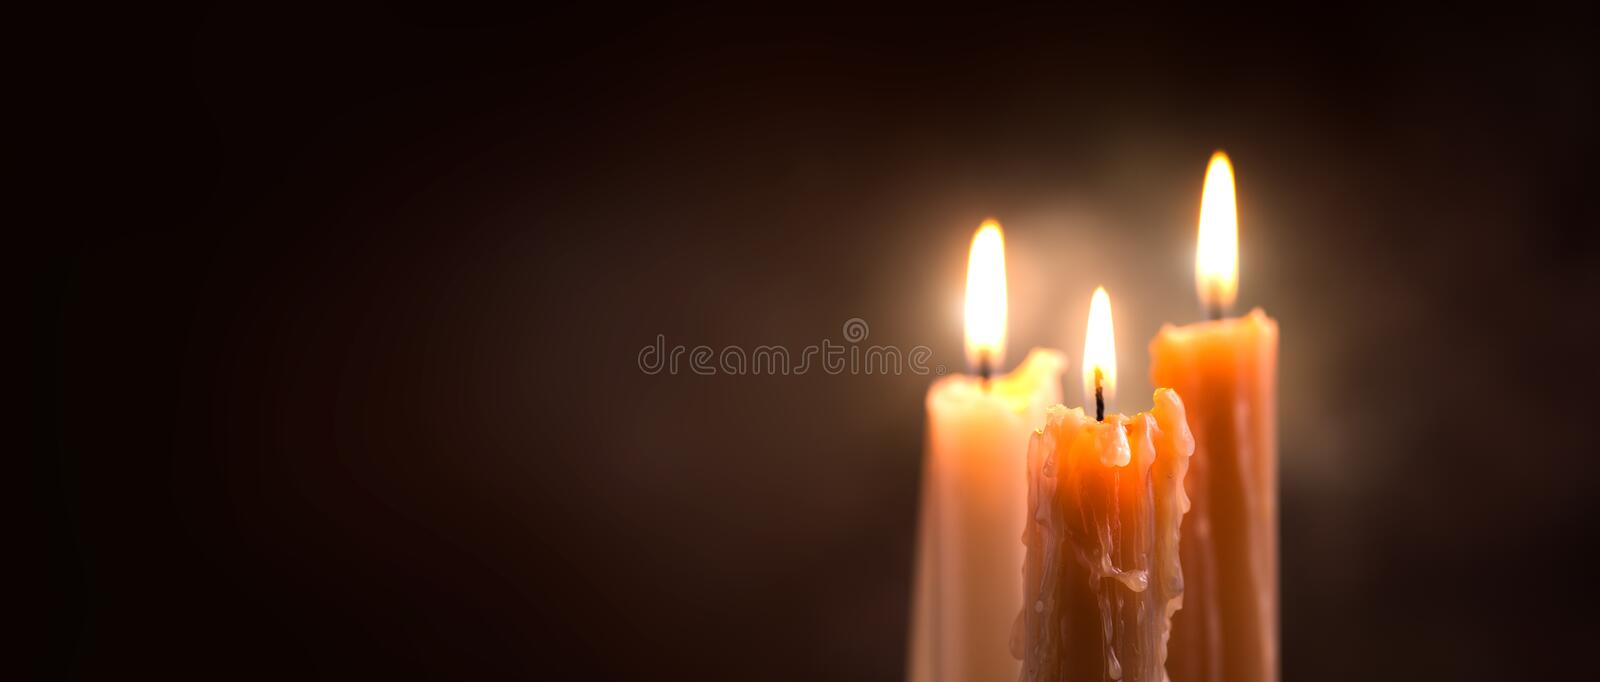 Candle flame closeup on a dark background. Candle light border design. Melted wax candles burning at night. Widescreen stock image